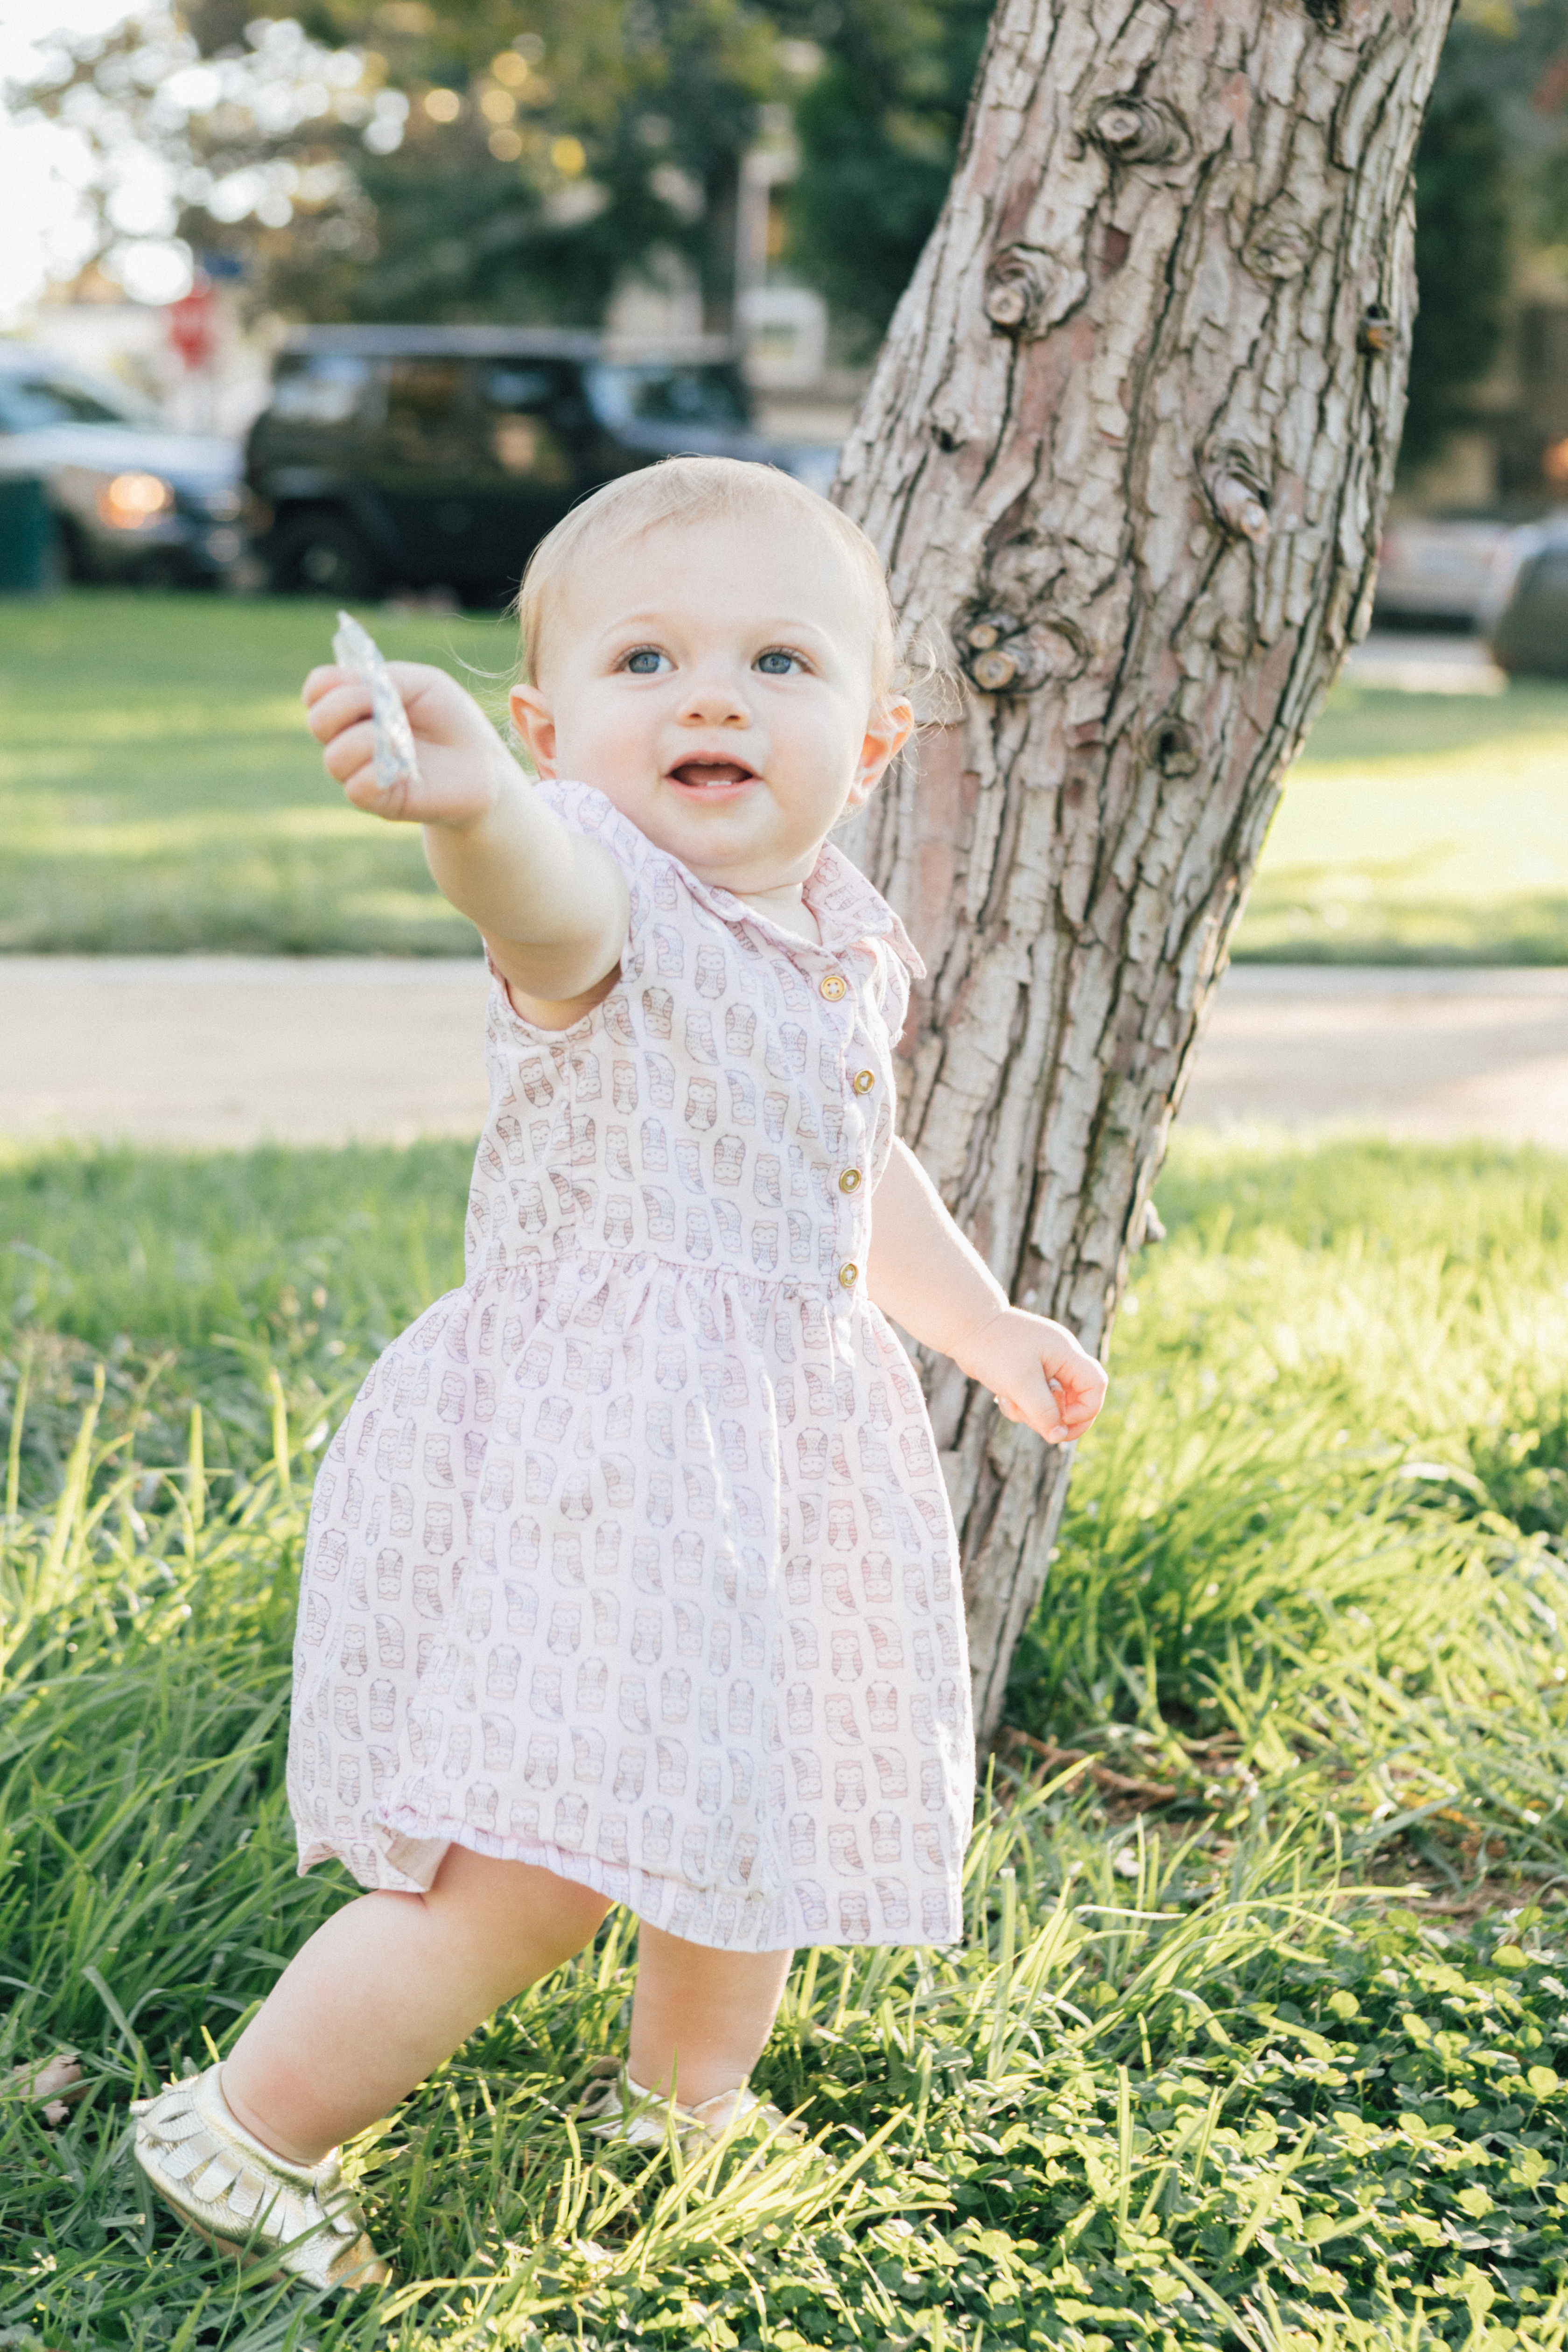 Los Angeles Blogger, RELish By Arielle's daughter wears a Target pinkn baby girl dress